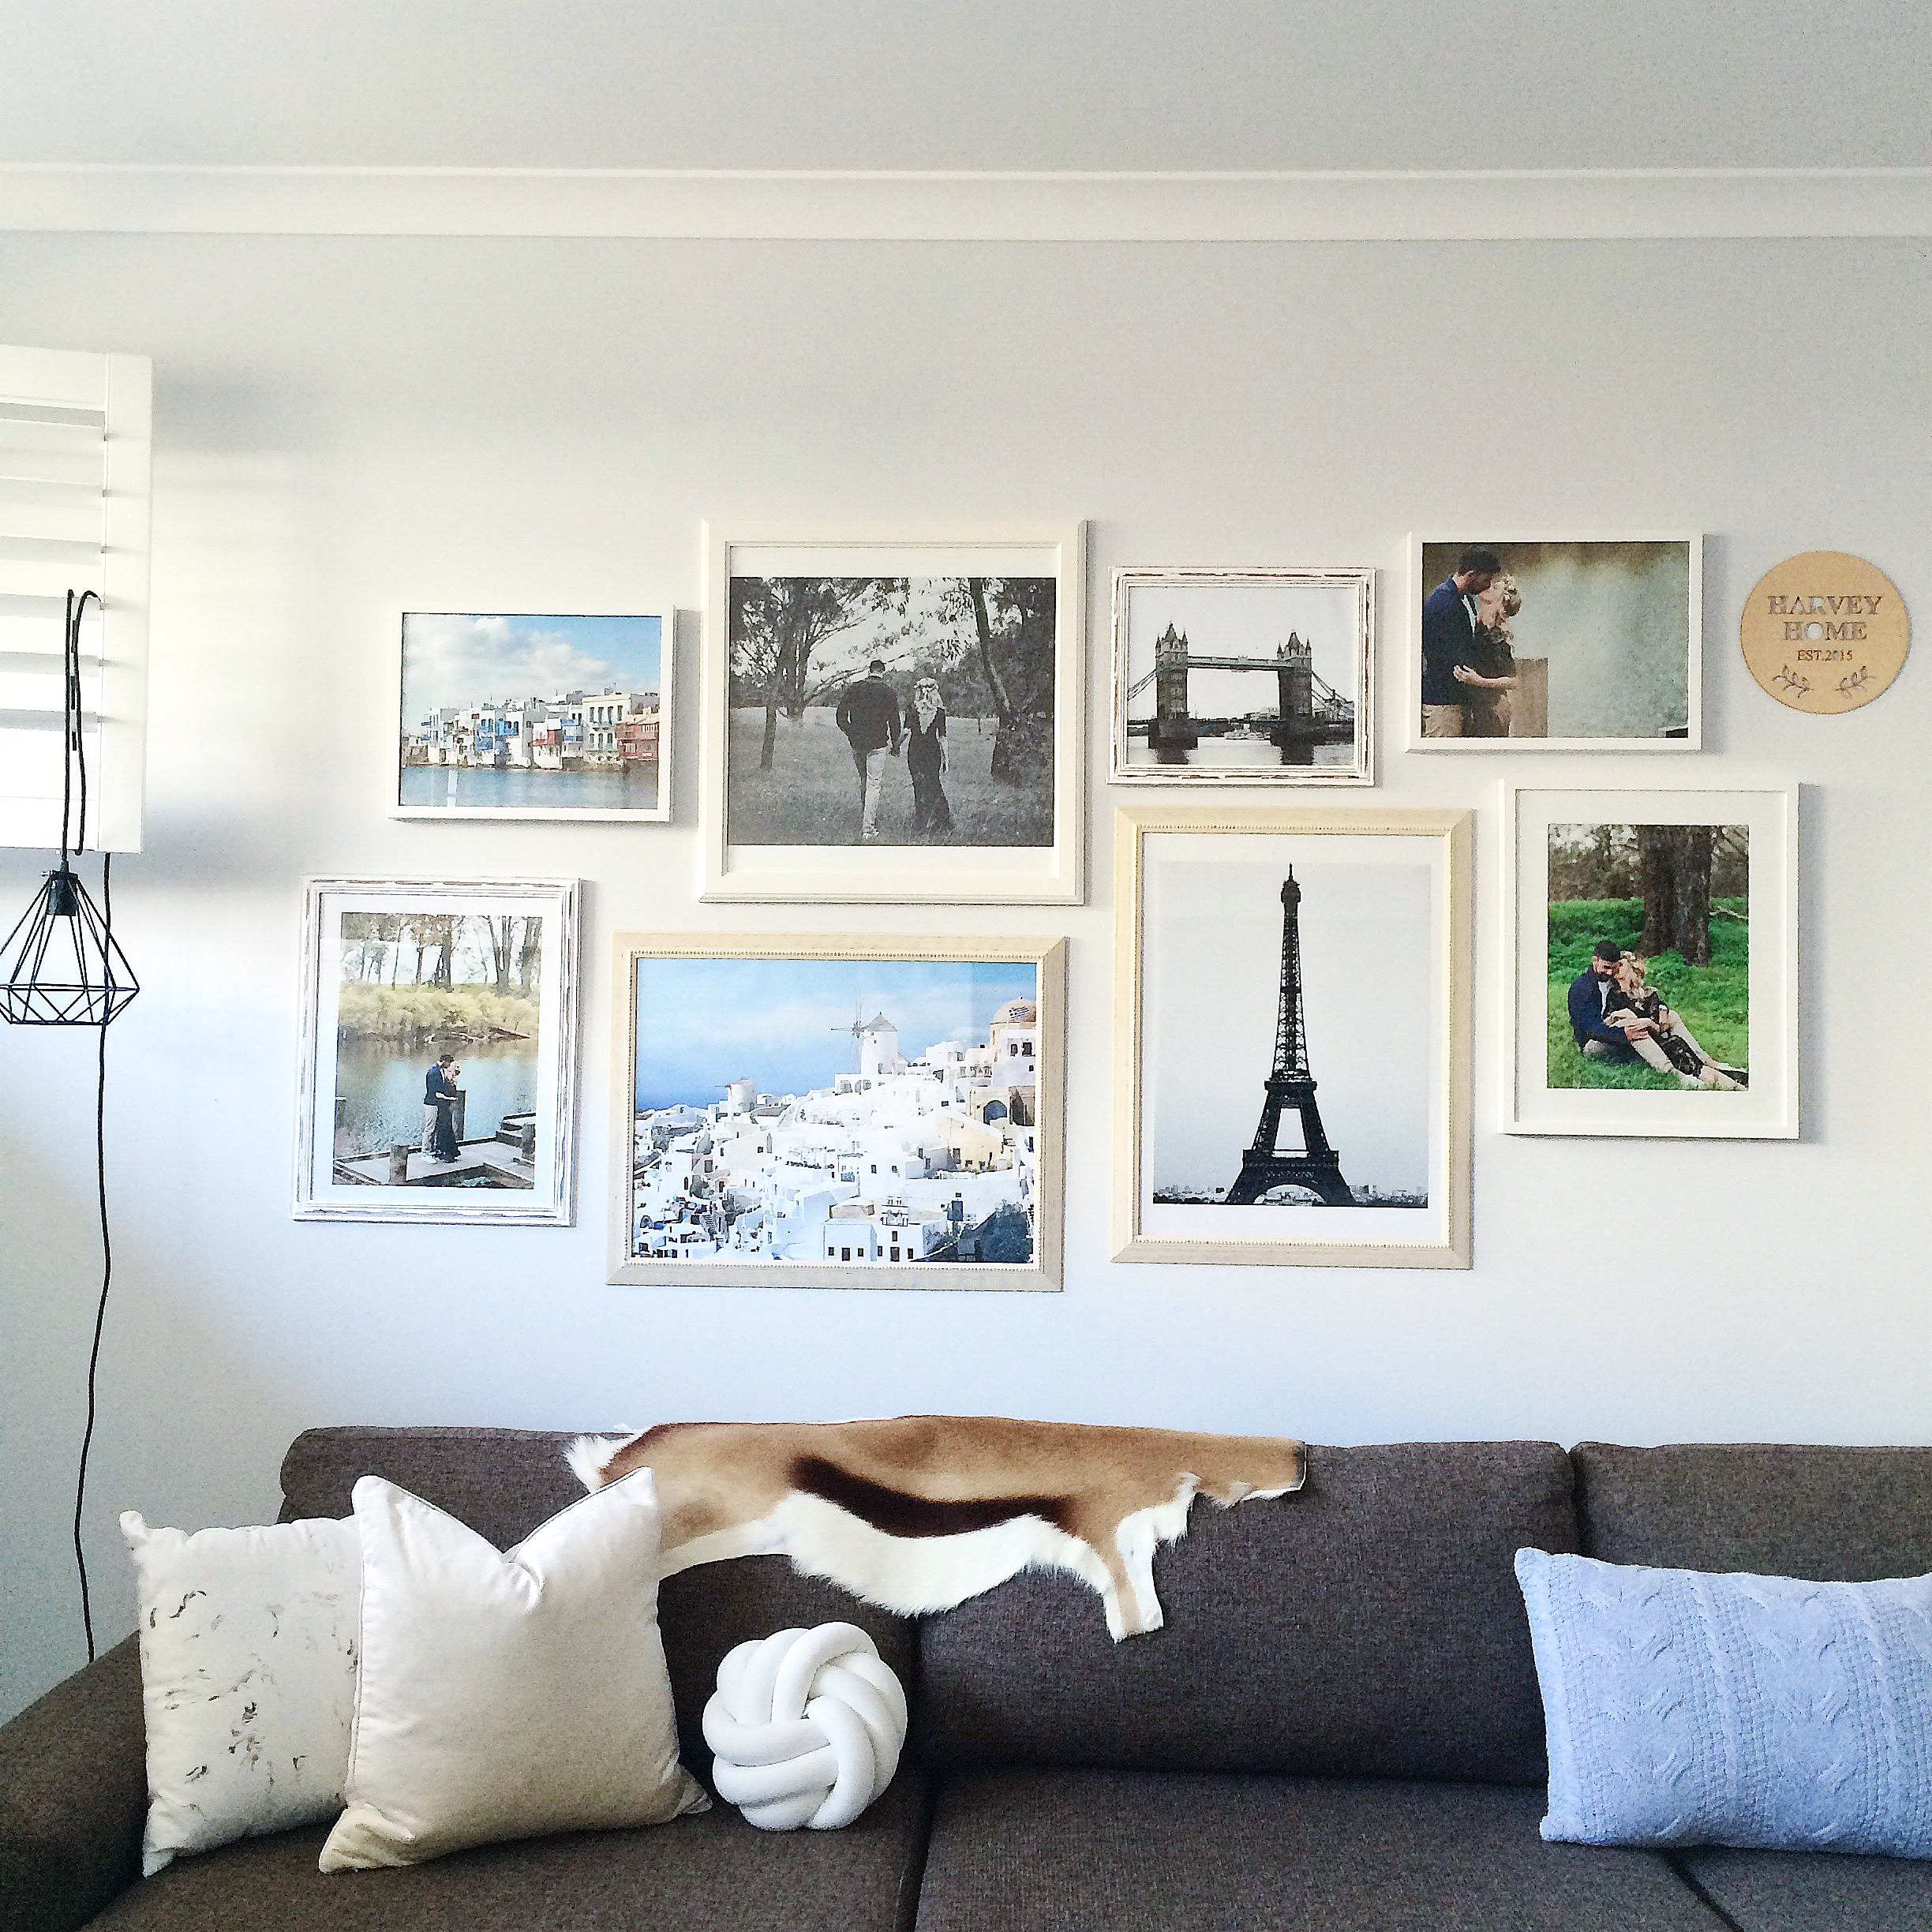 Creating A Family Gallery Wall Miss Kyree Loves